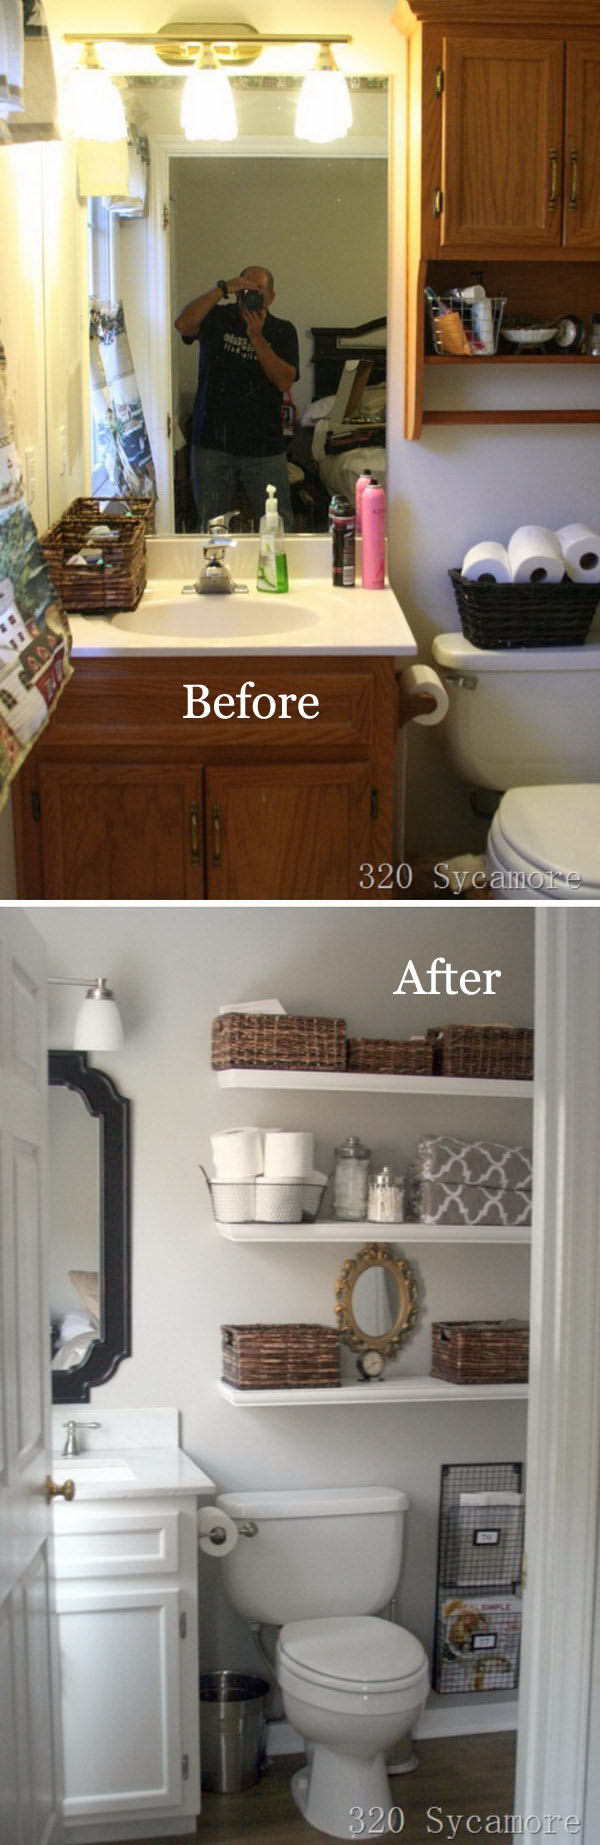 Amazing Bathroom Makeovers DIYCraftsGuru - Small master bathroom makeover ideas